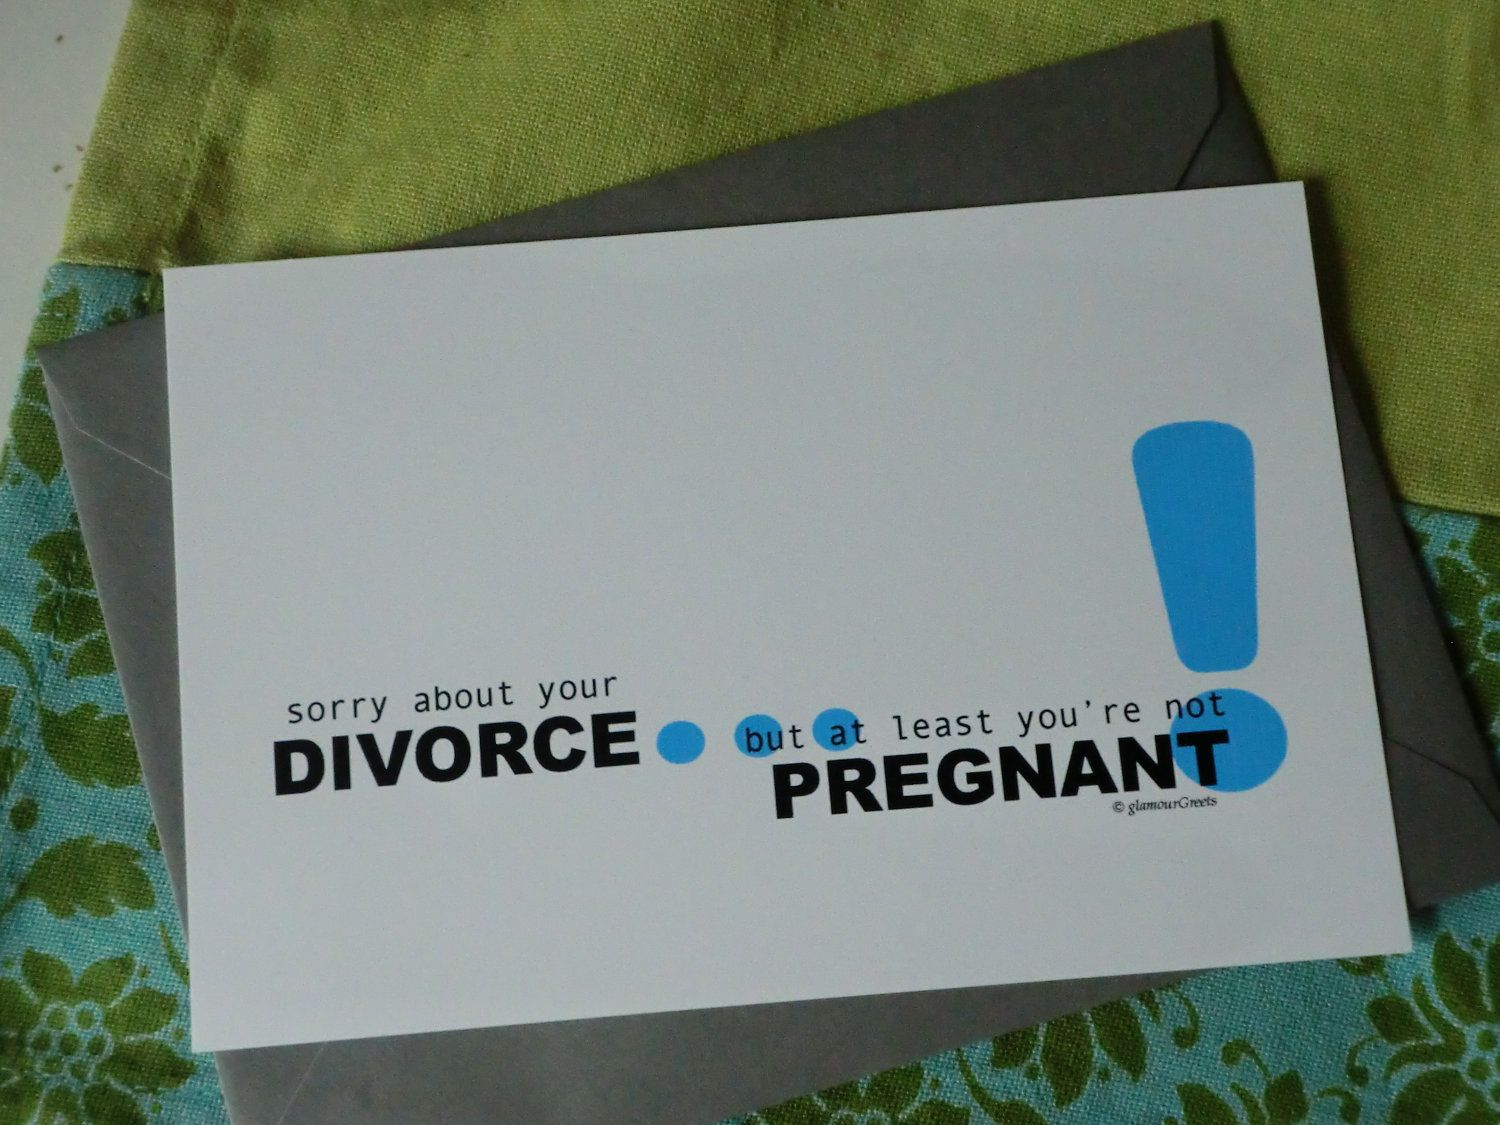 Divorce note card sorry about your divorce but at least youre not